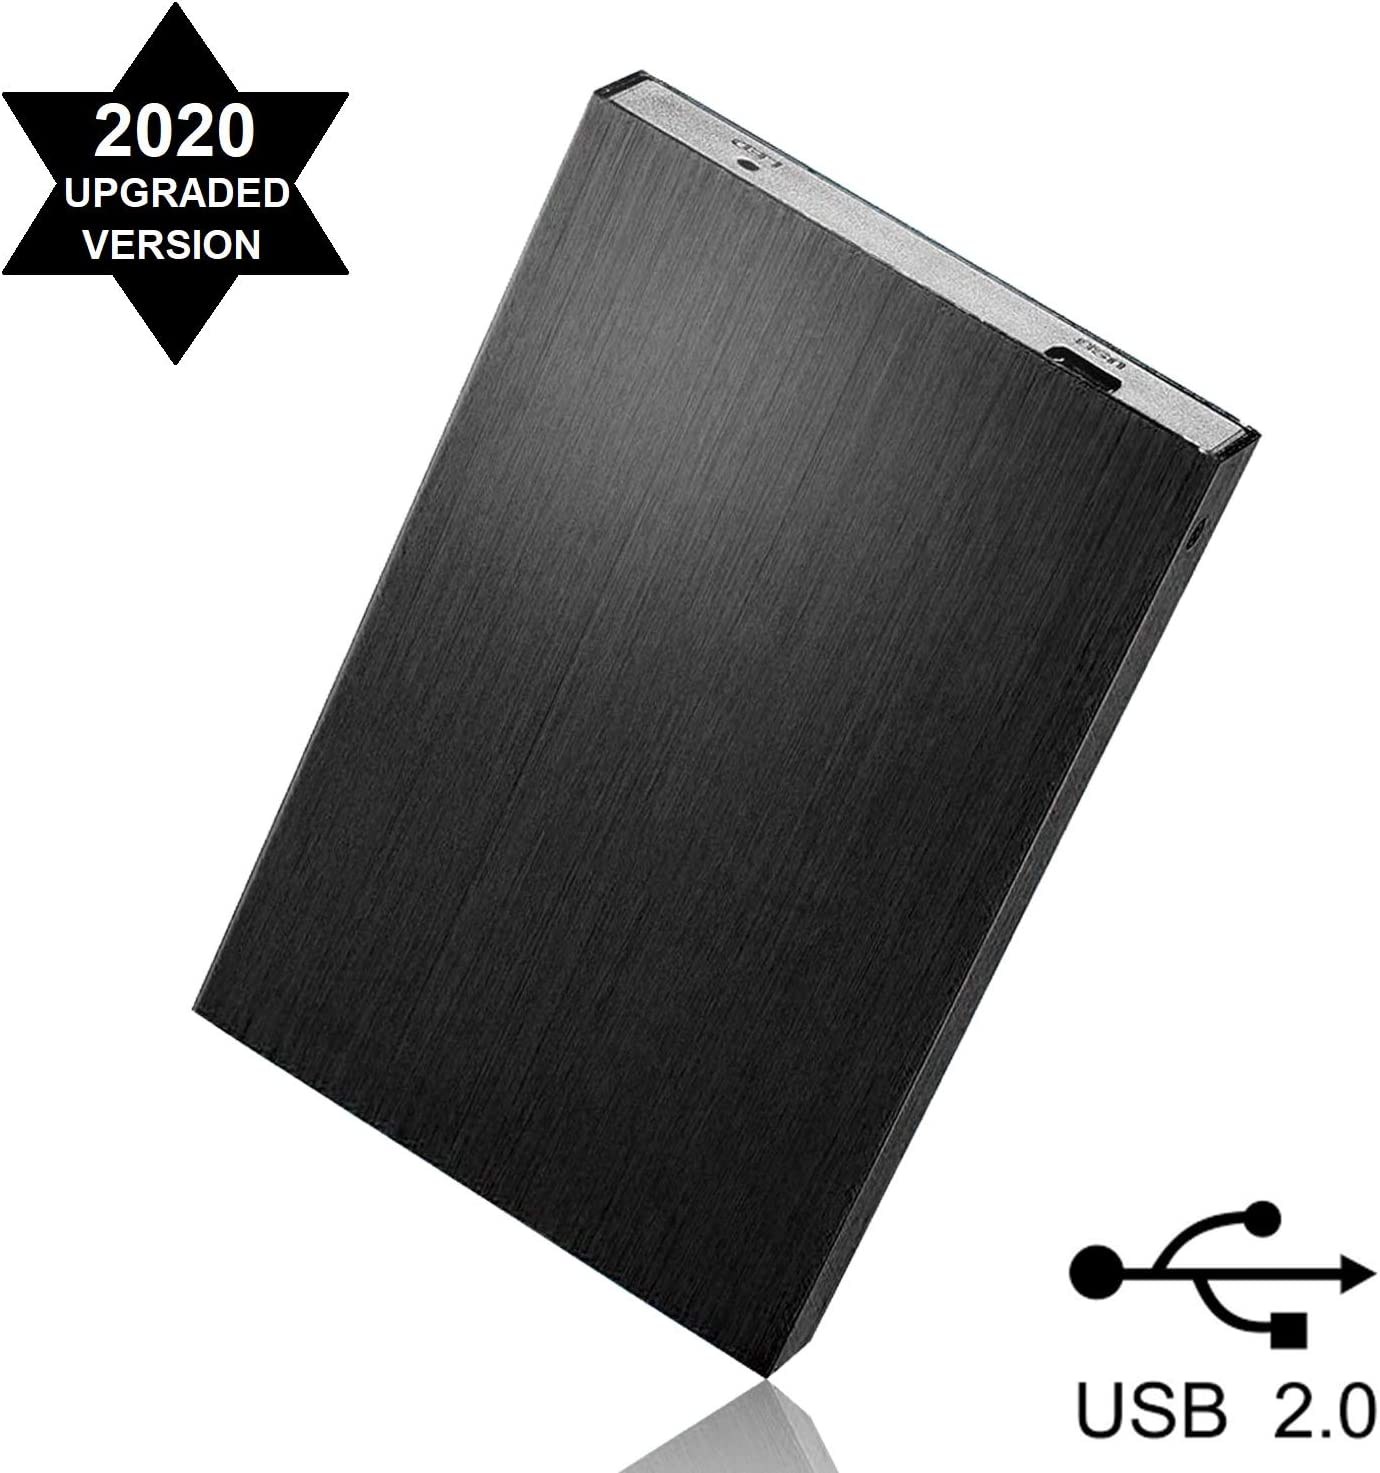 SUHSAI 200GB External Hard Drive 2.5 Inch Portable Slim Storage Expansion HDD USB 2.0 Harddrive for Mac and PC, Laptop and More -Black